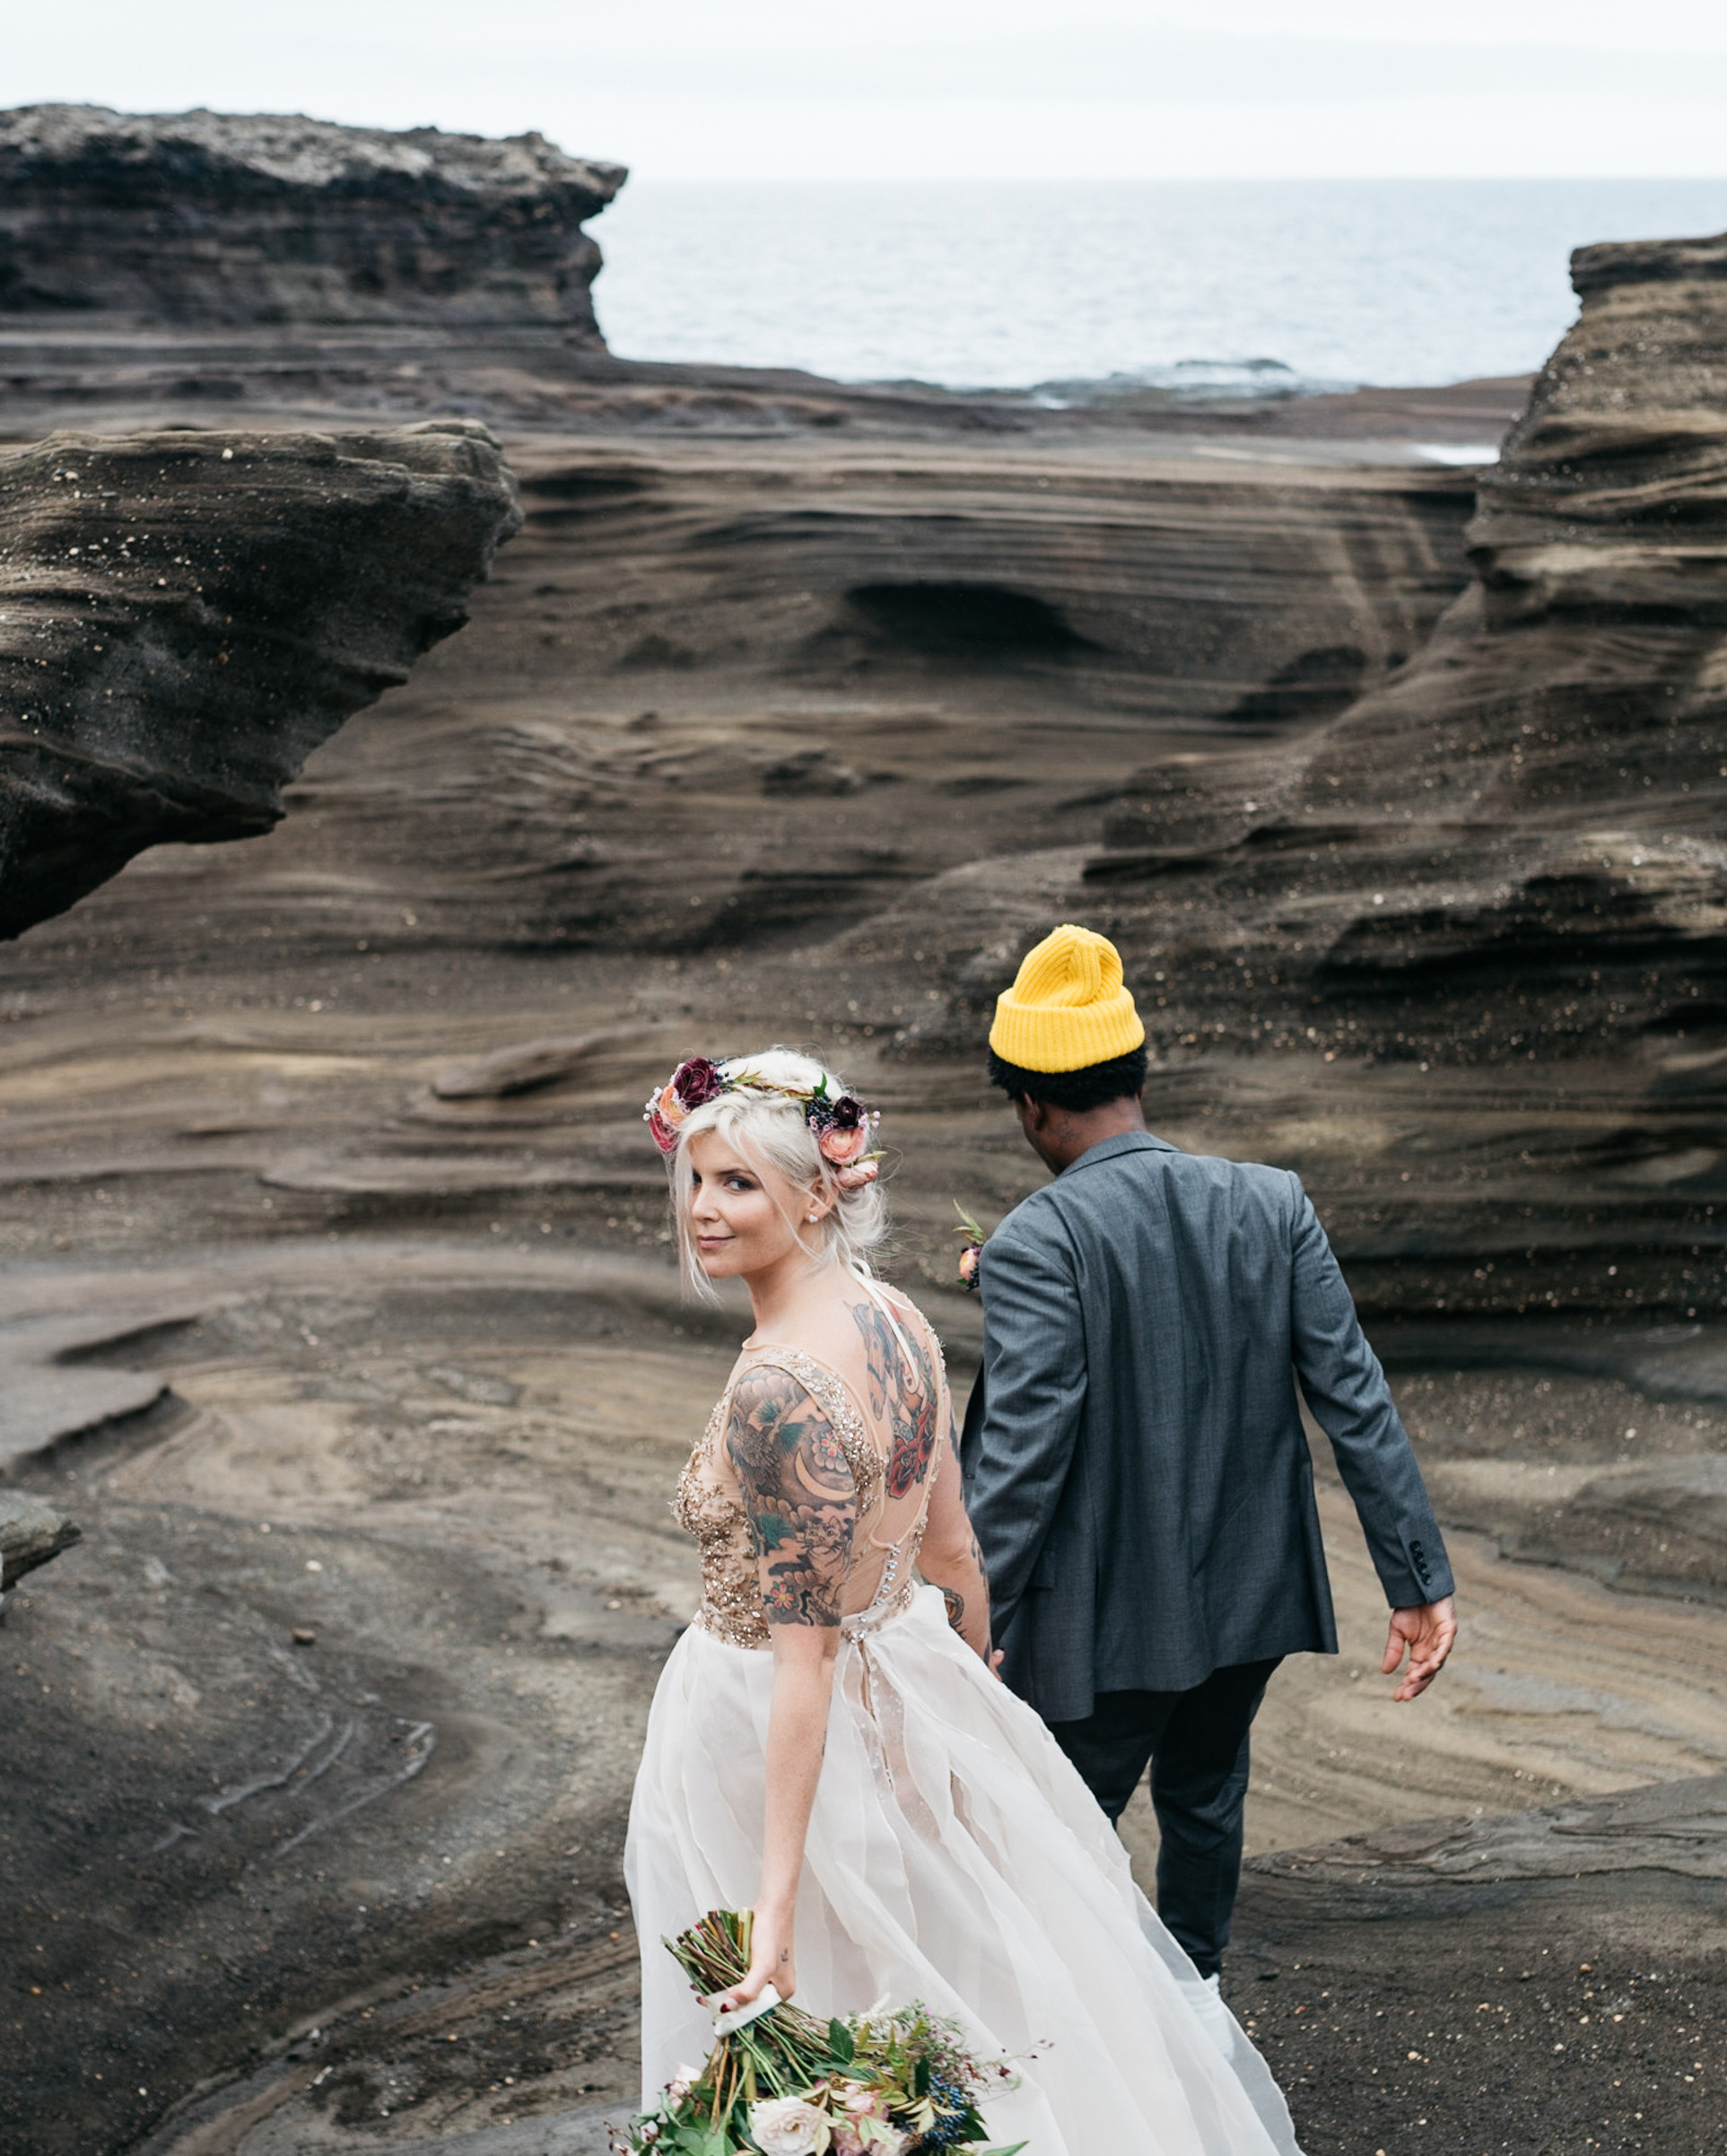 candid sydney wedding photo.jpg